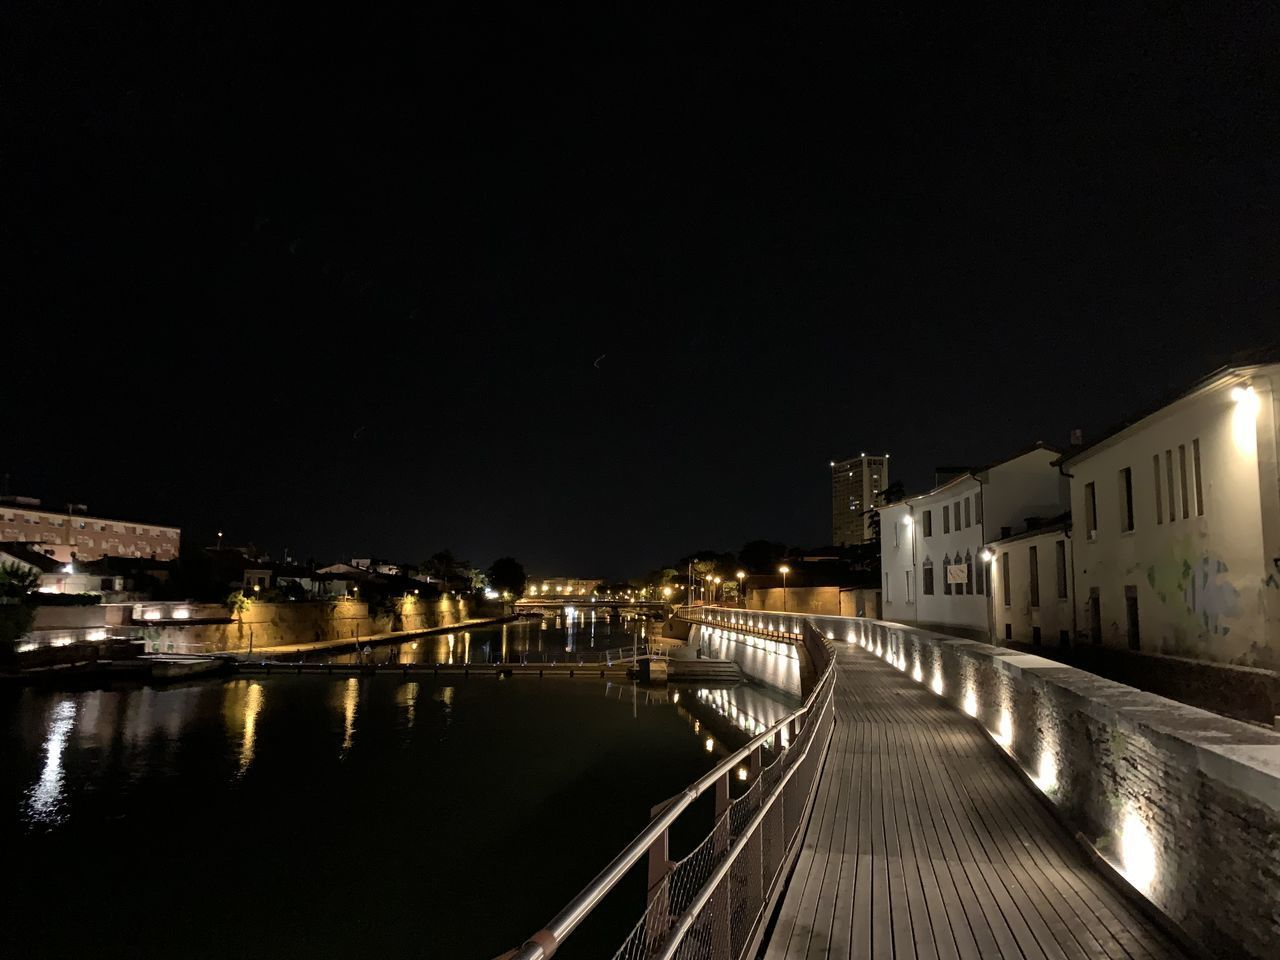 architecture, built structure, illuminated, night, building exterior, city, sky, water, building, nature, no people, direction, copy space, transportation, residential district, the way forward, reflection, outdoors, lighting equipment, canal